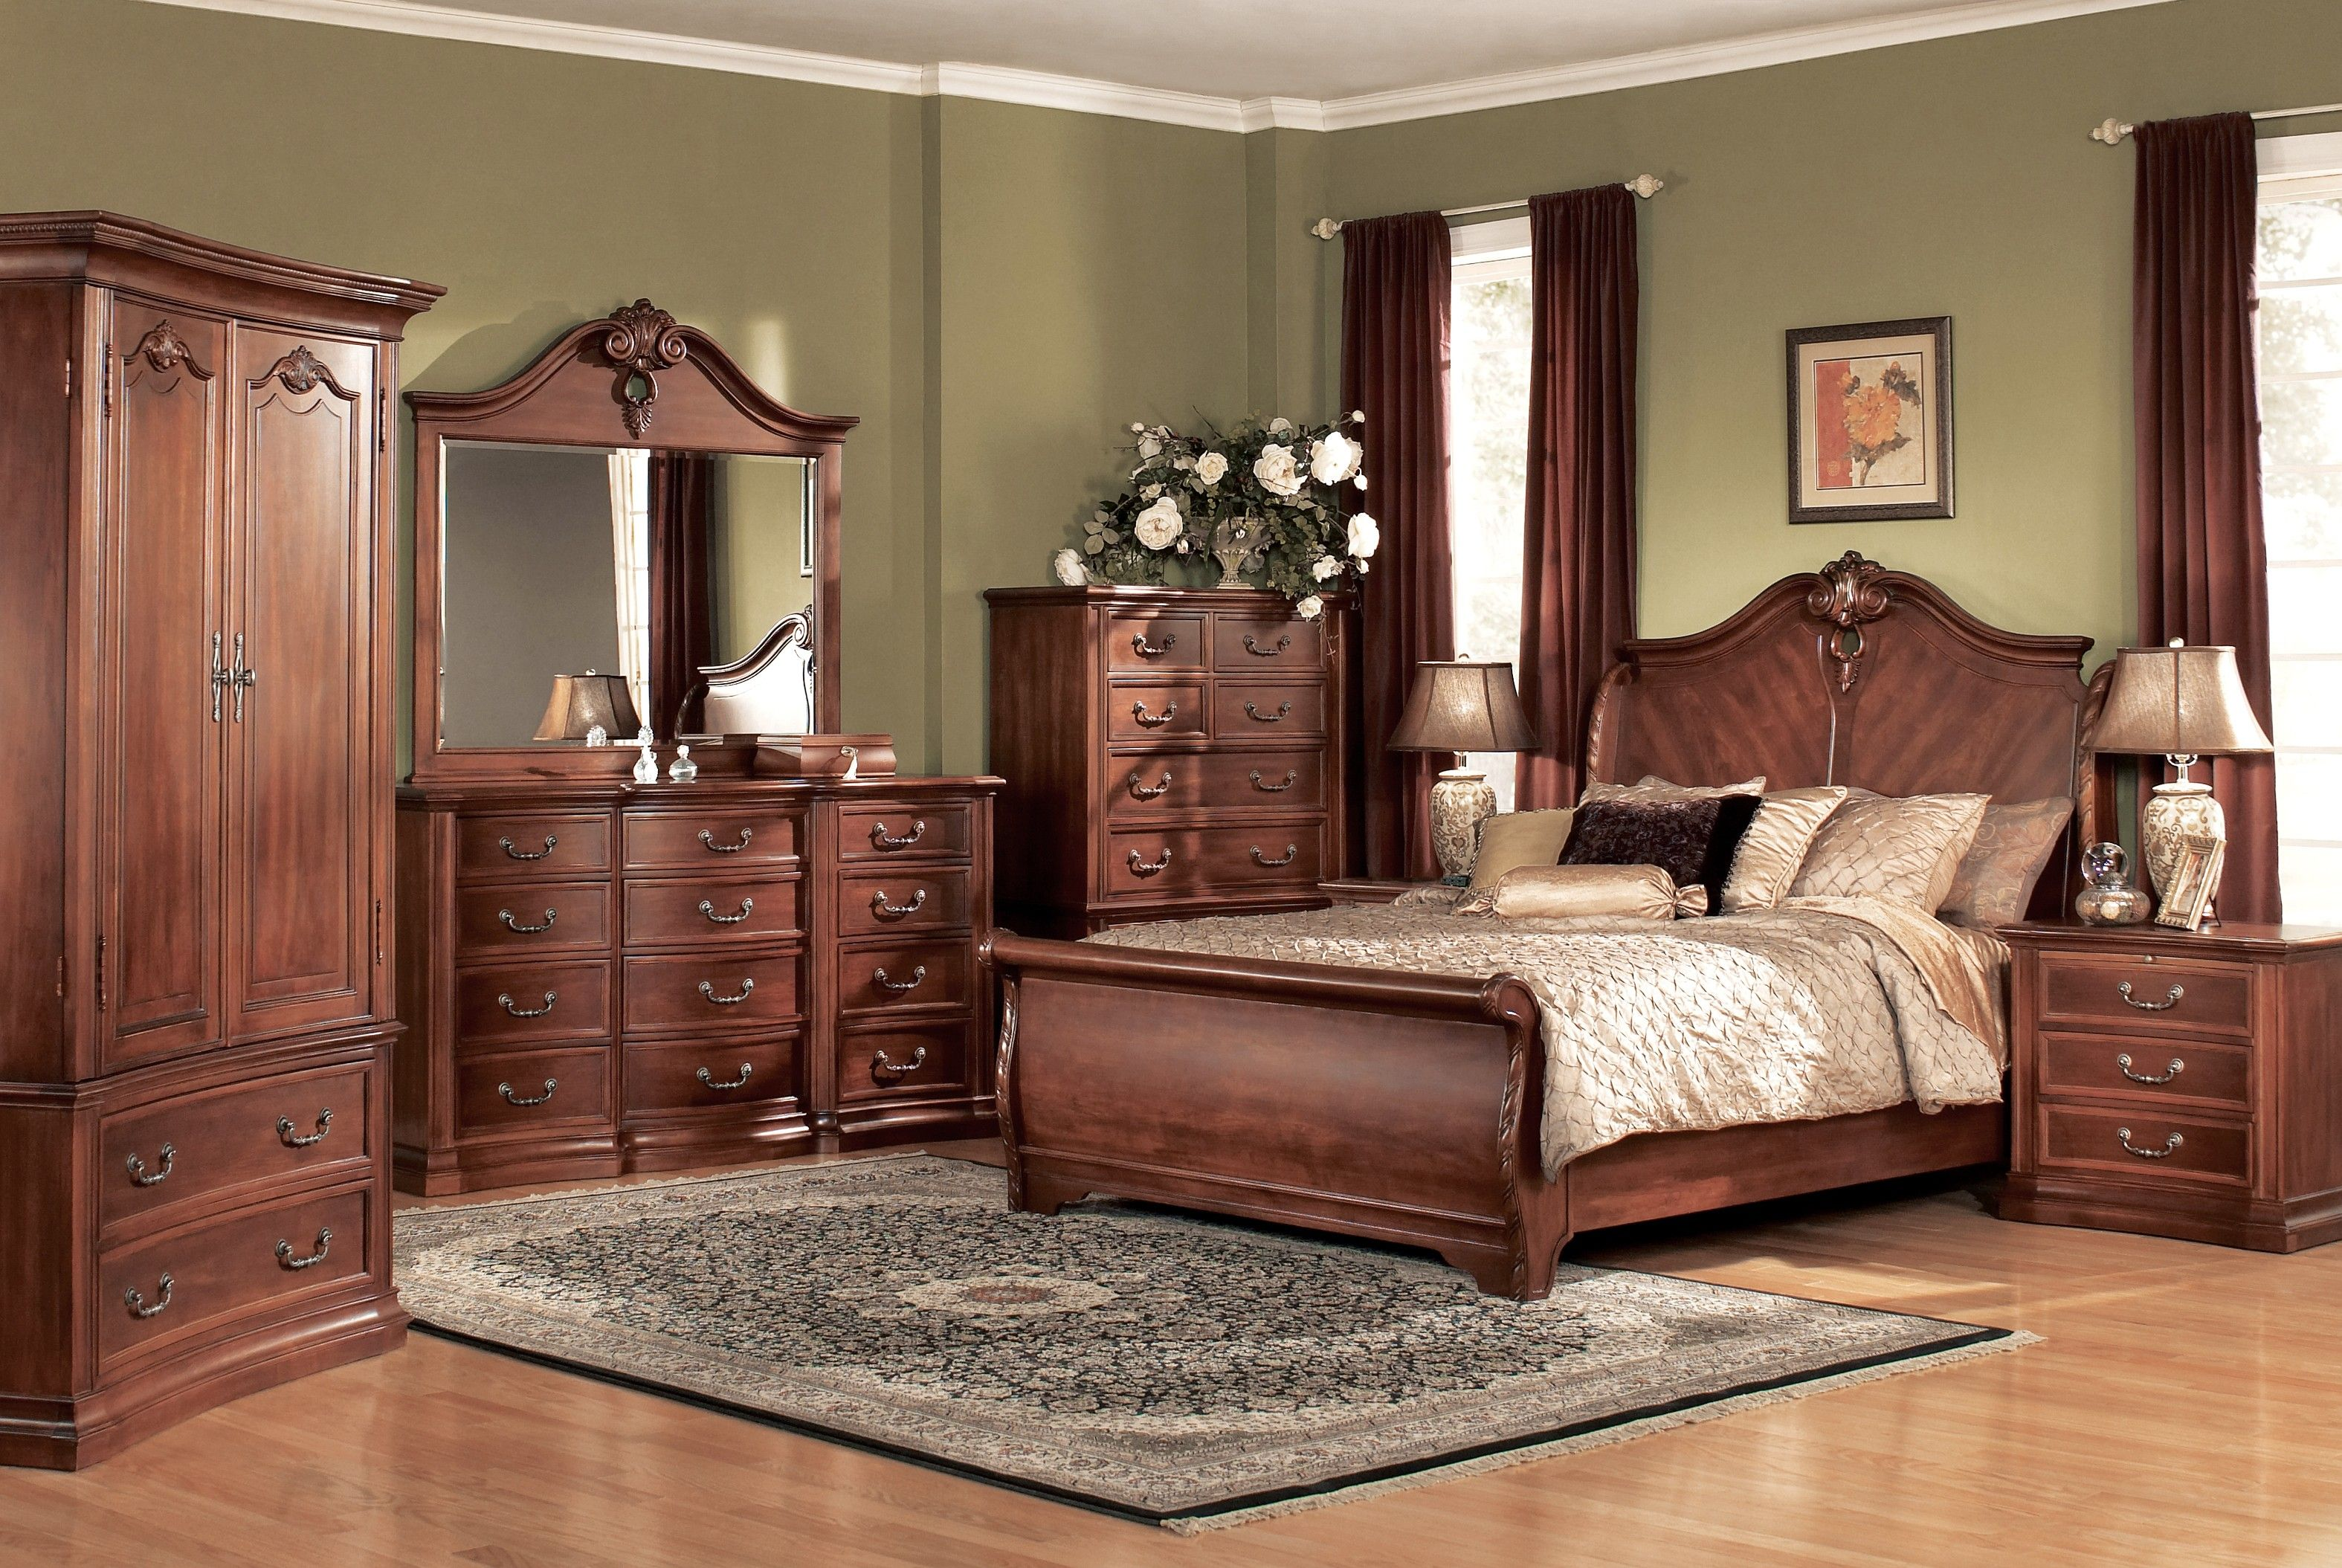 Greatest Decorate Traditional Bedroom Design Ideas With Wardrobe And Wooden  Floors Beautiful Traditional Bedroom Design Ideas